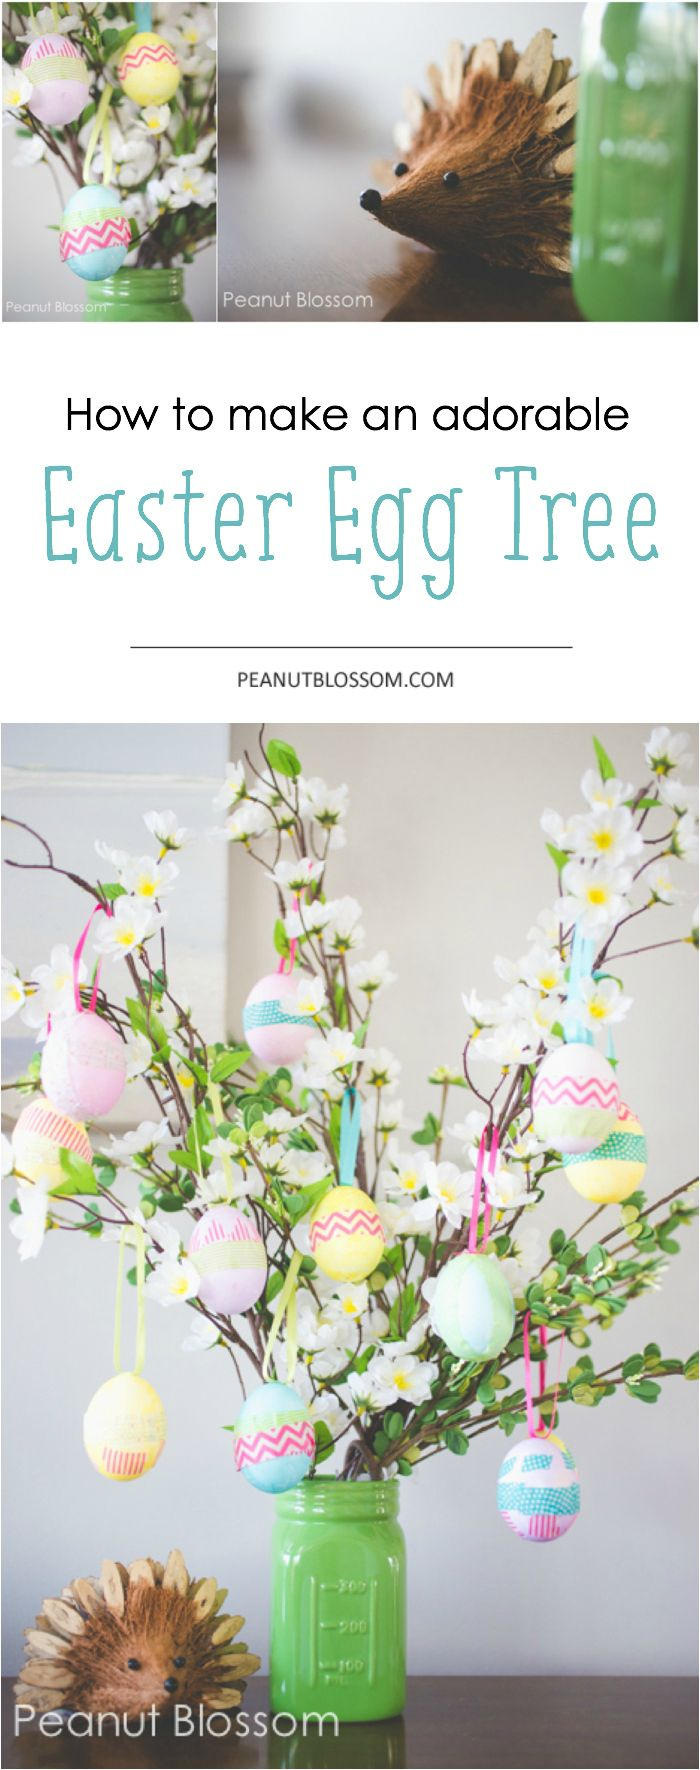 How to make an adorable Easter egg tree. Perfect project for an afternoon!